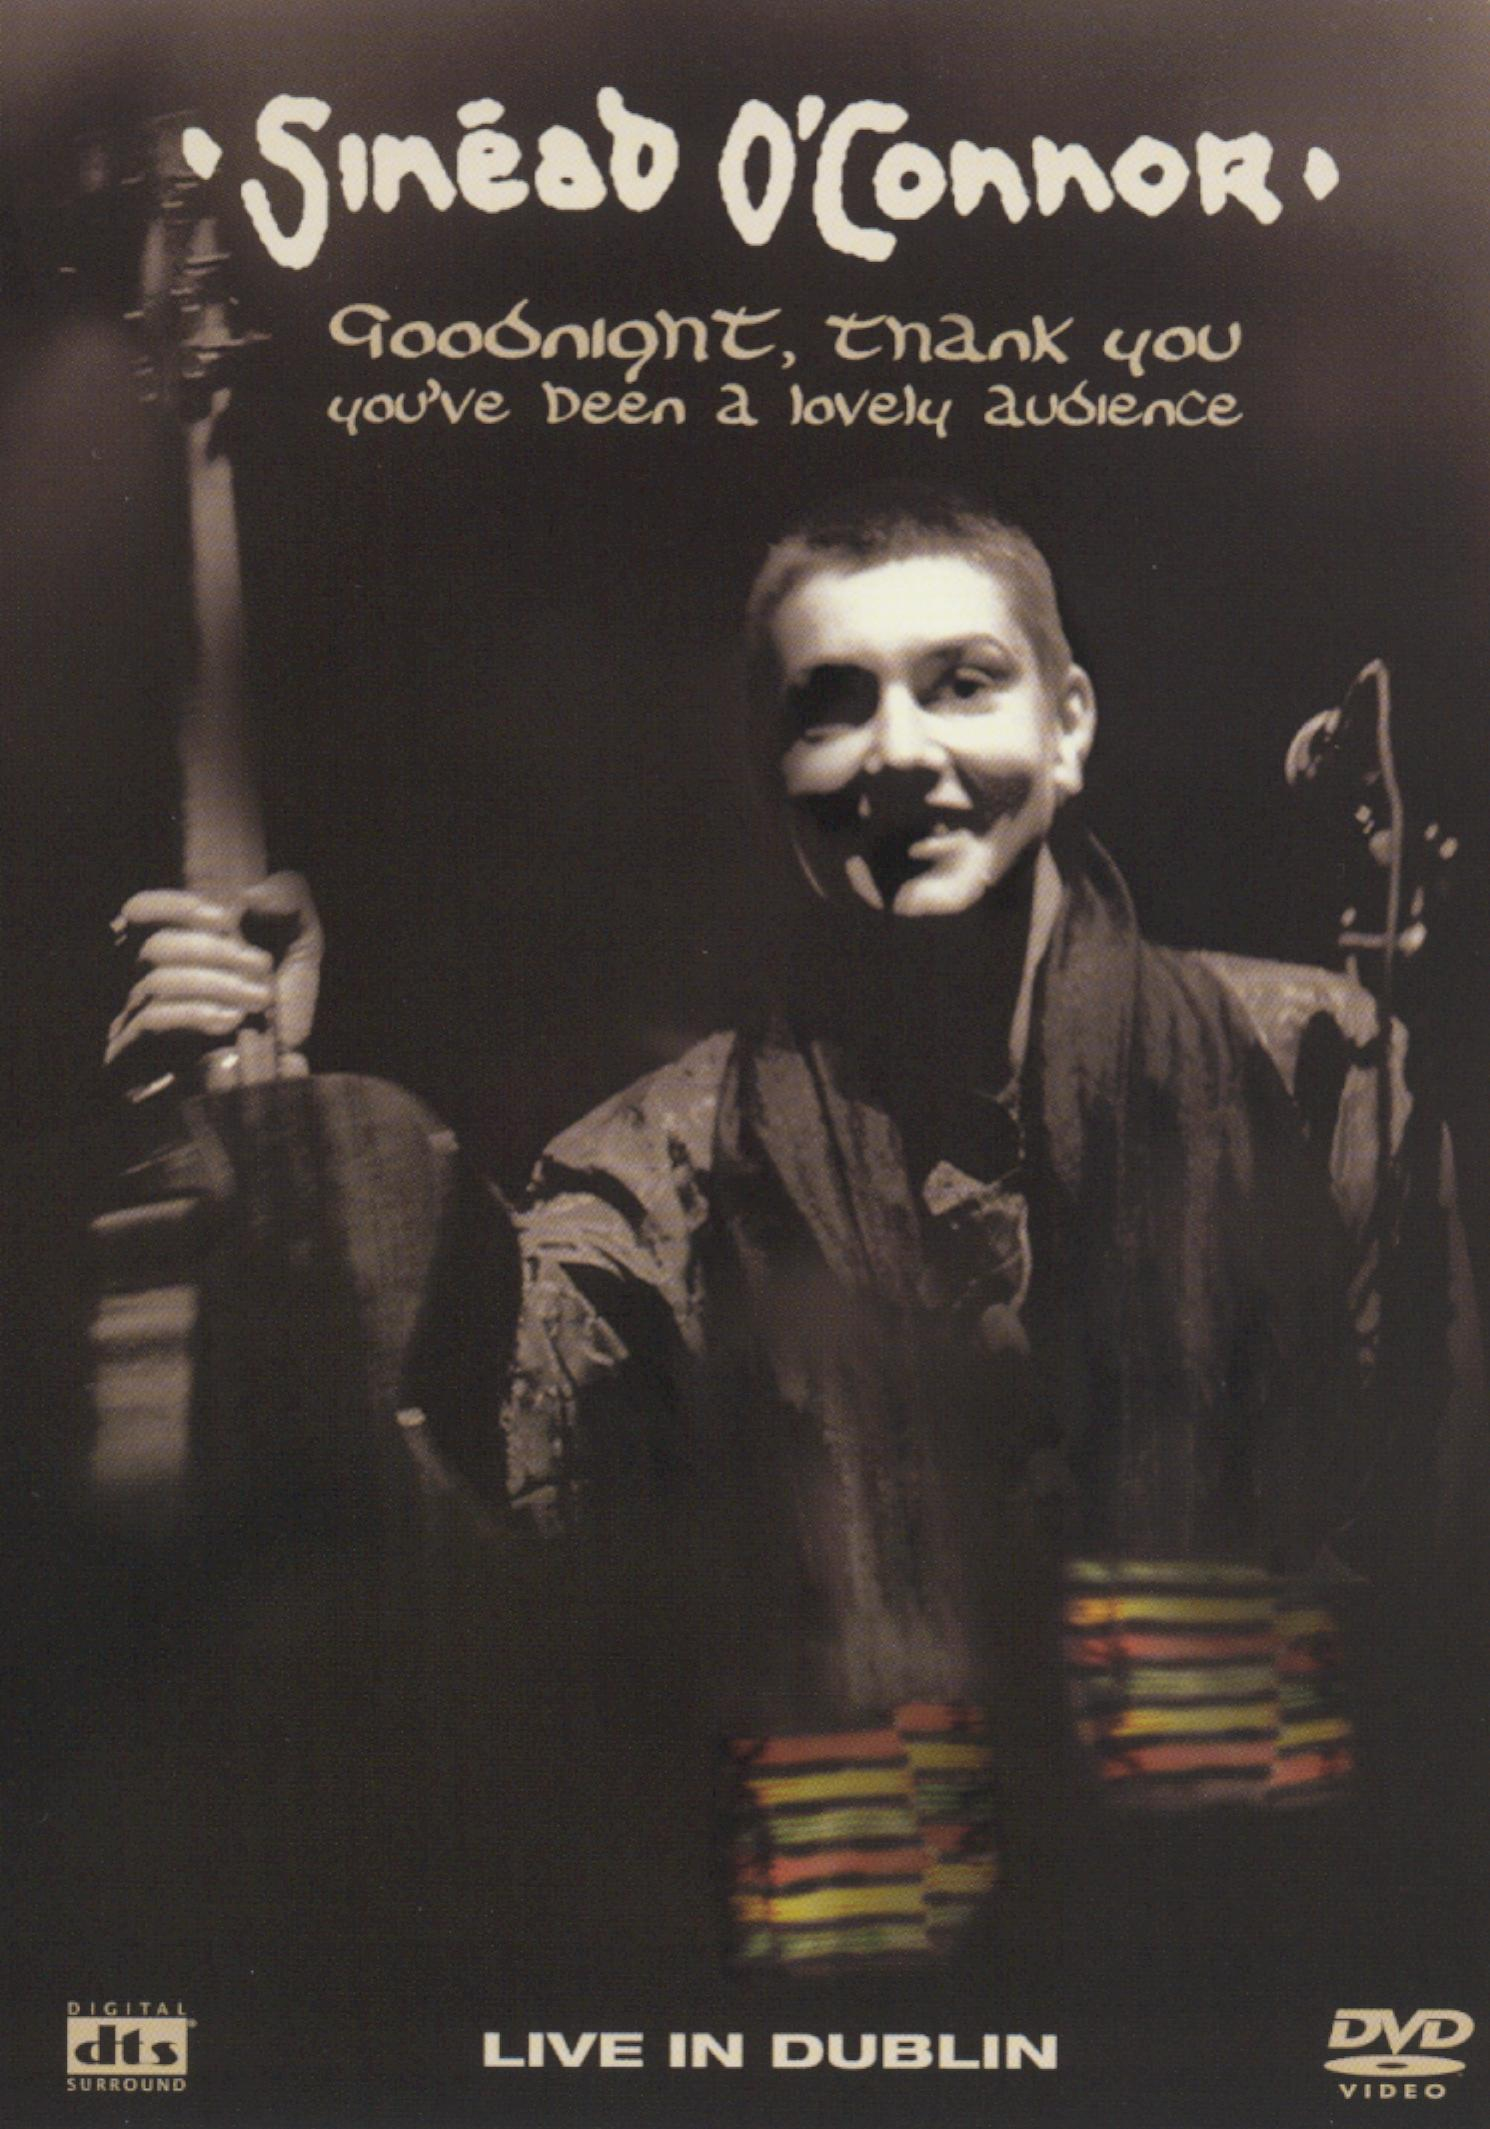 Sinead O'Connor: Goodnight, Thank You, You've Been a Lovely Audiece - Live in Dublin